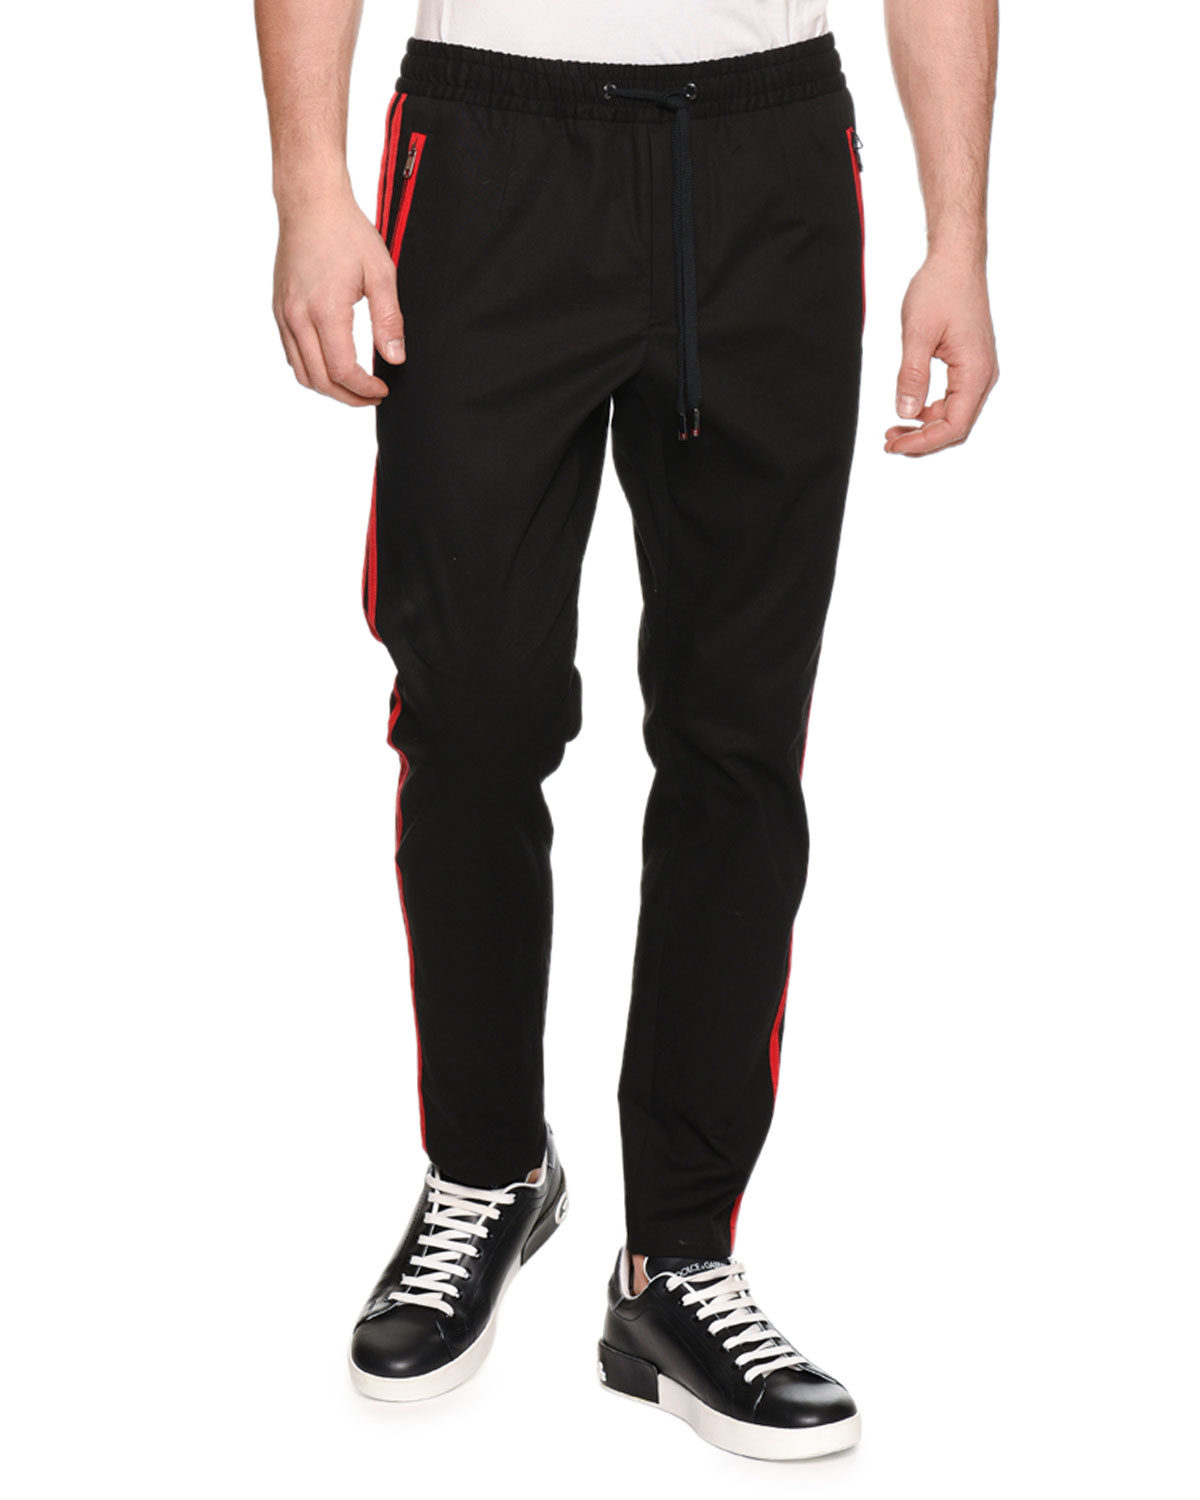 Aolamegs Men Casual Pants Letter embroidery Side Stripe